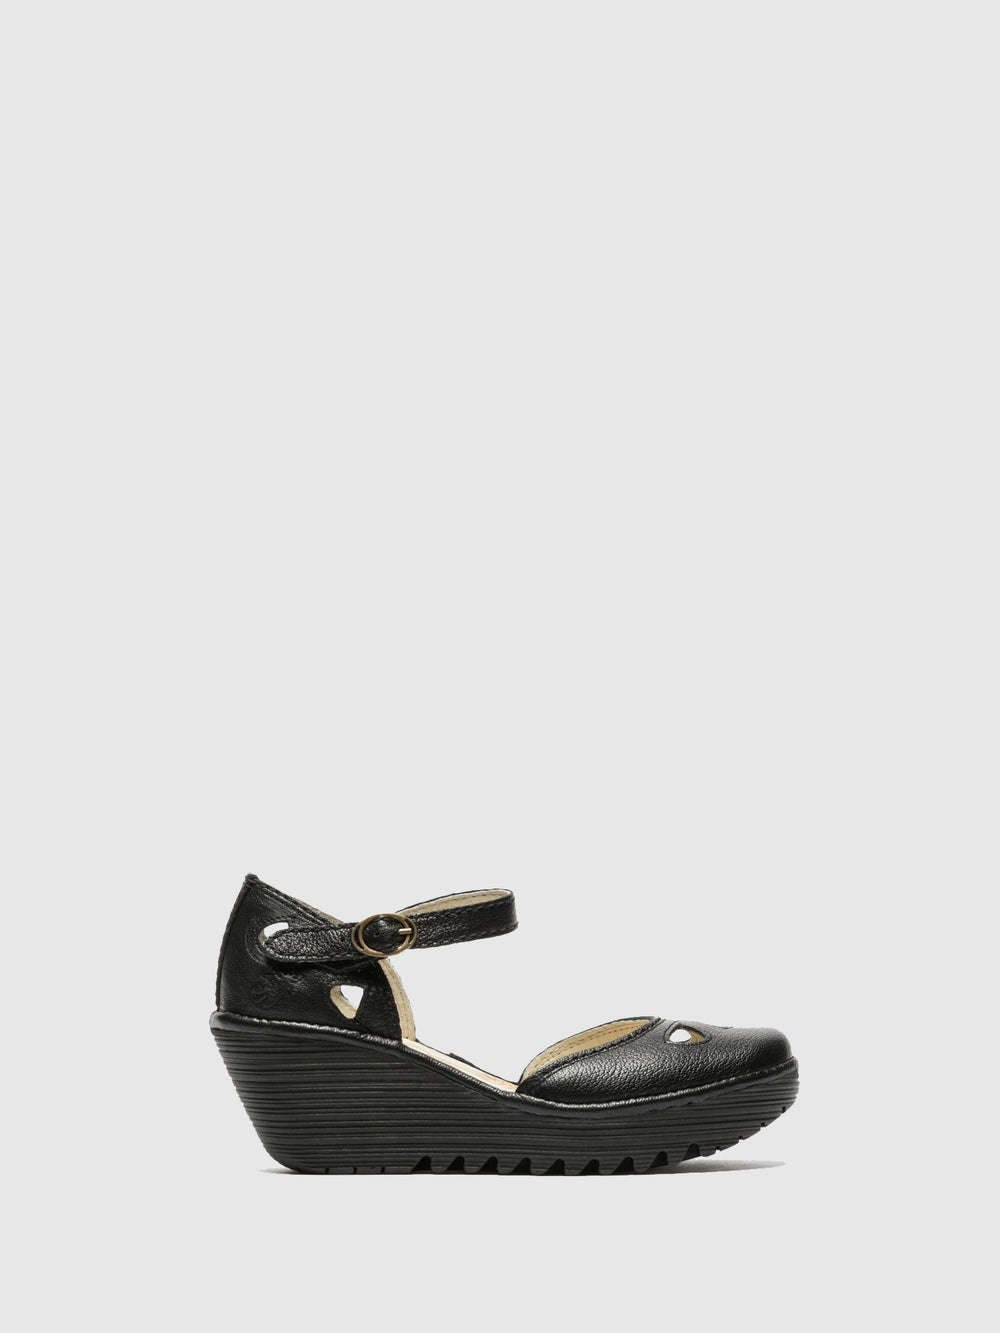 Carbon Black Wedge Sandals